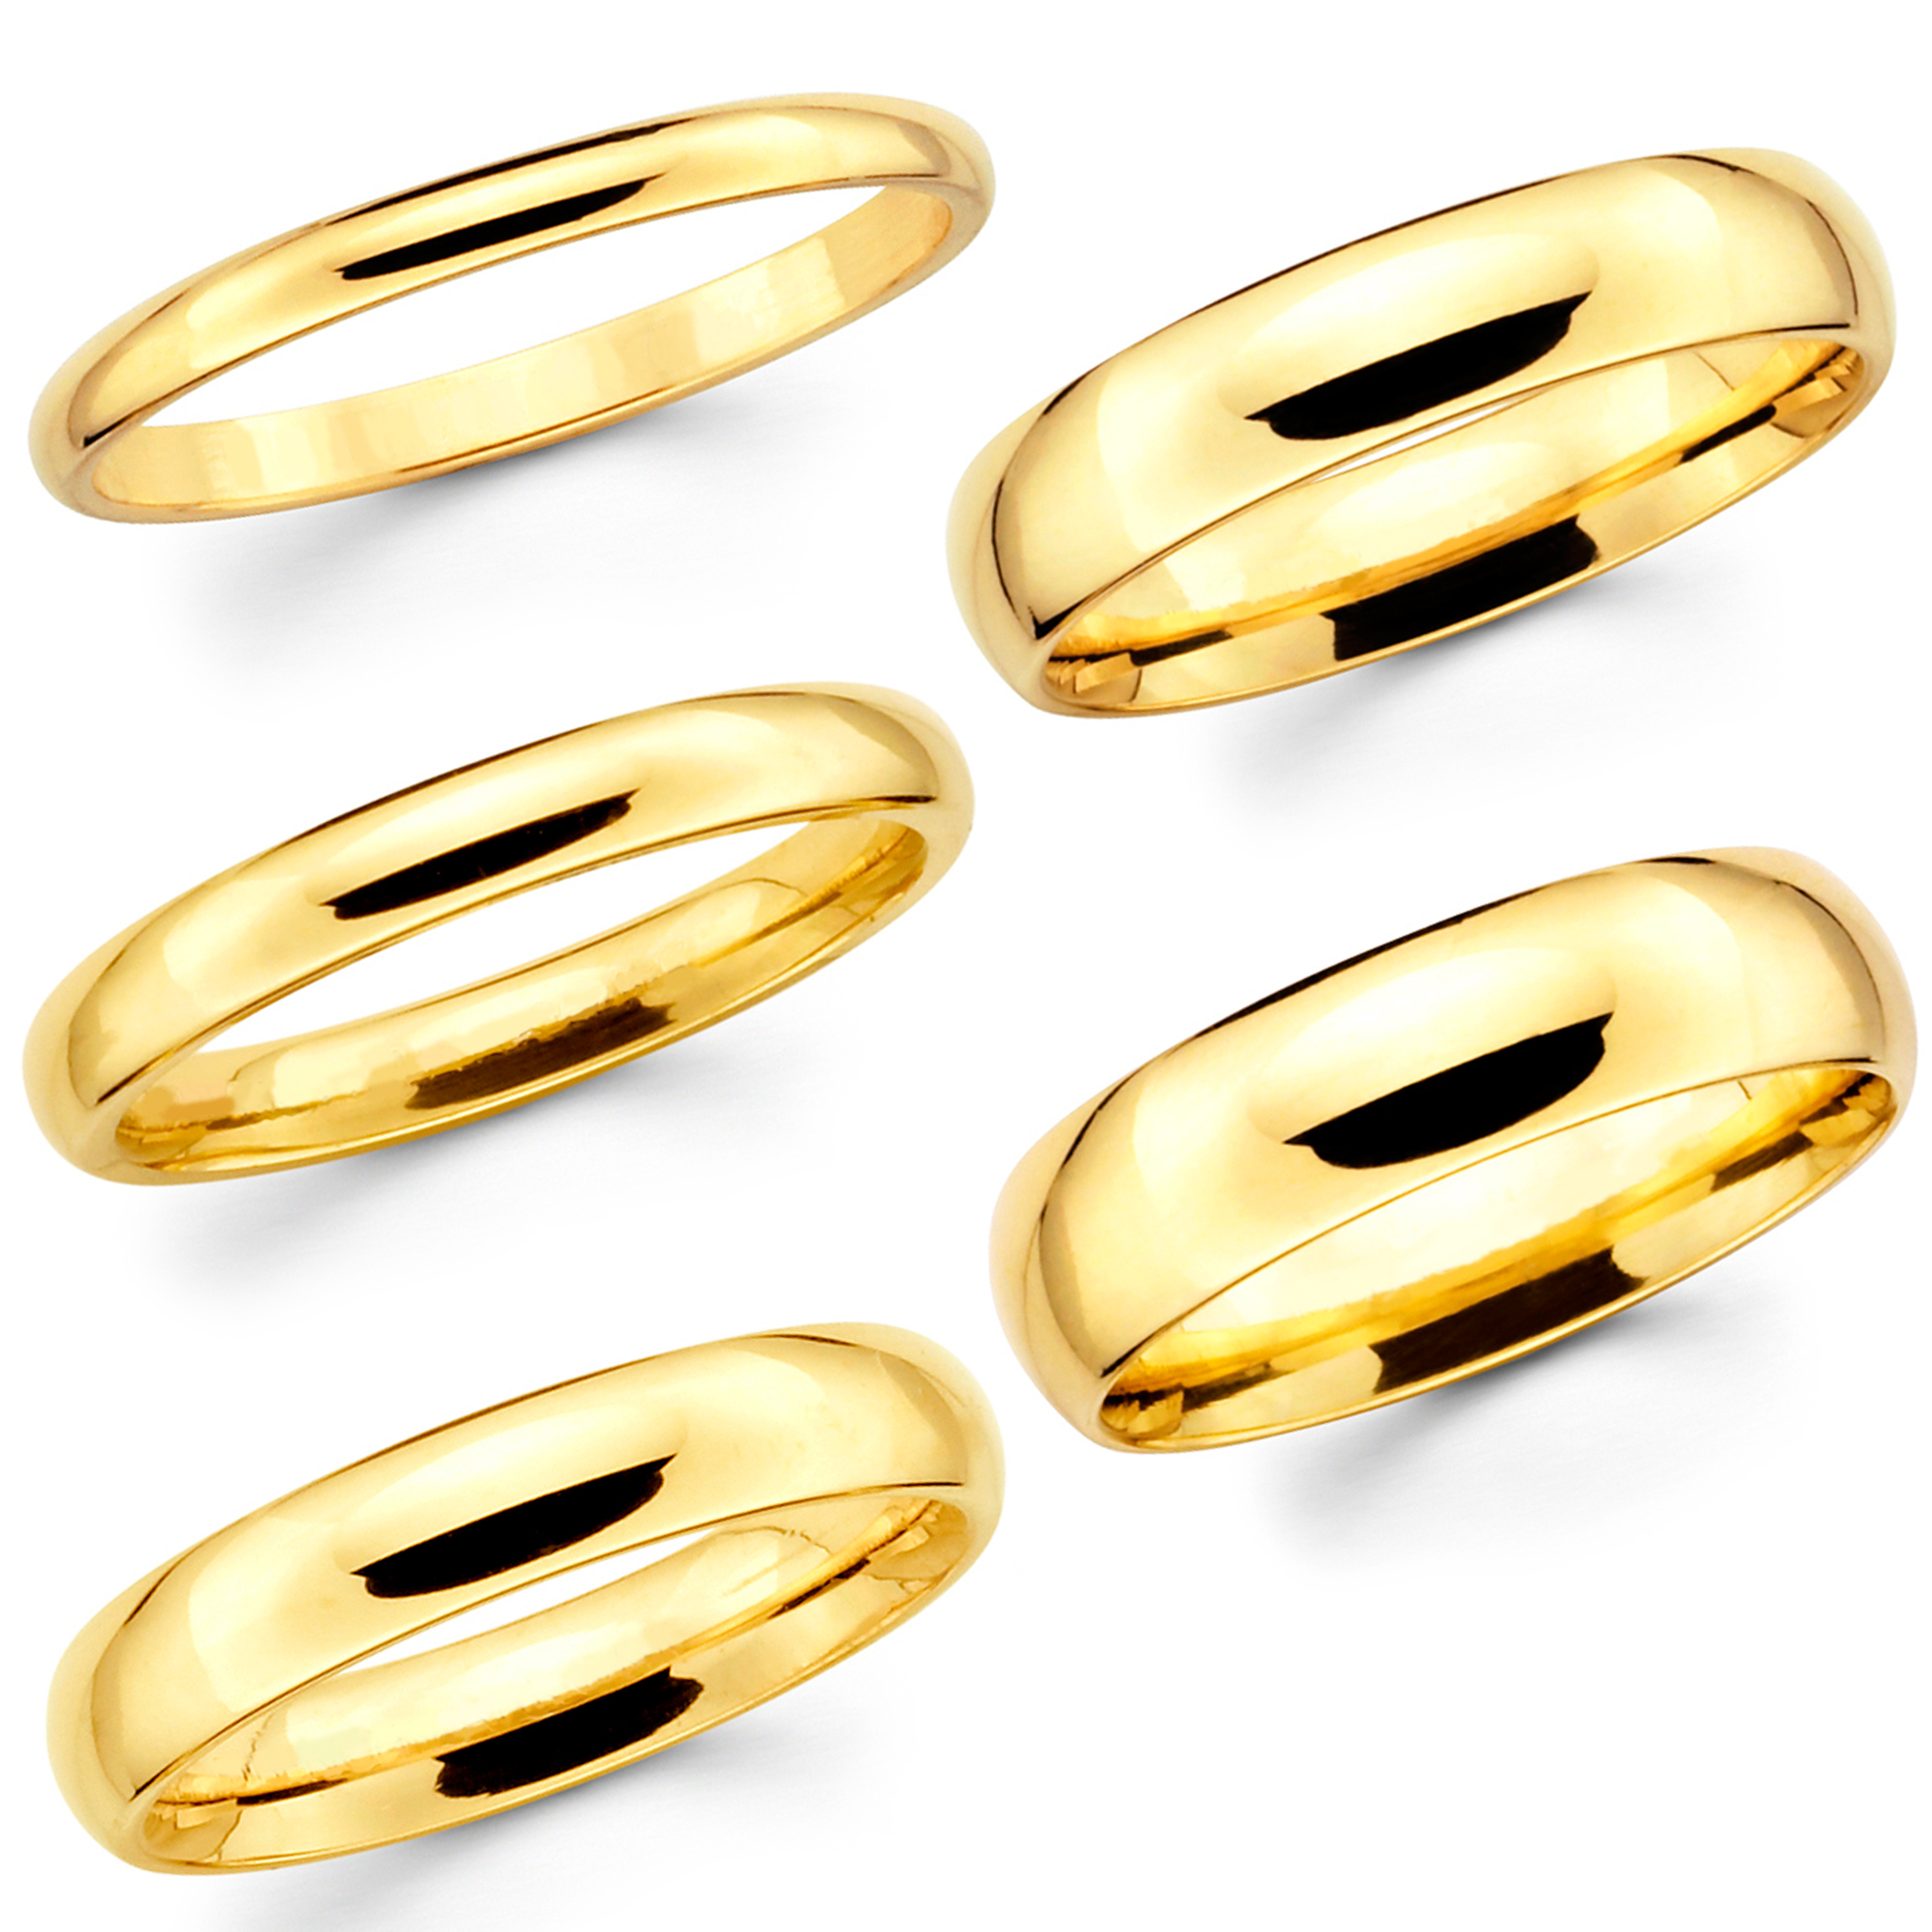 men ring wedding s mens simple rings band unisex gold media